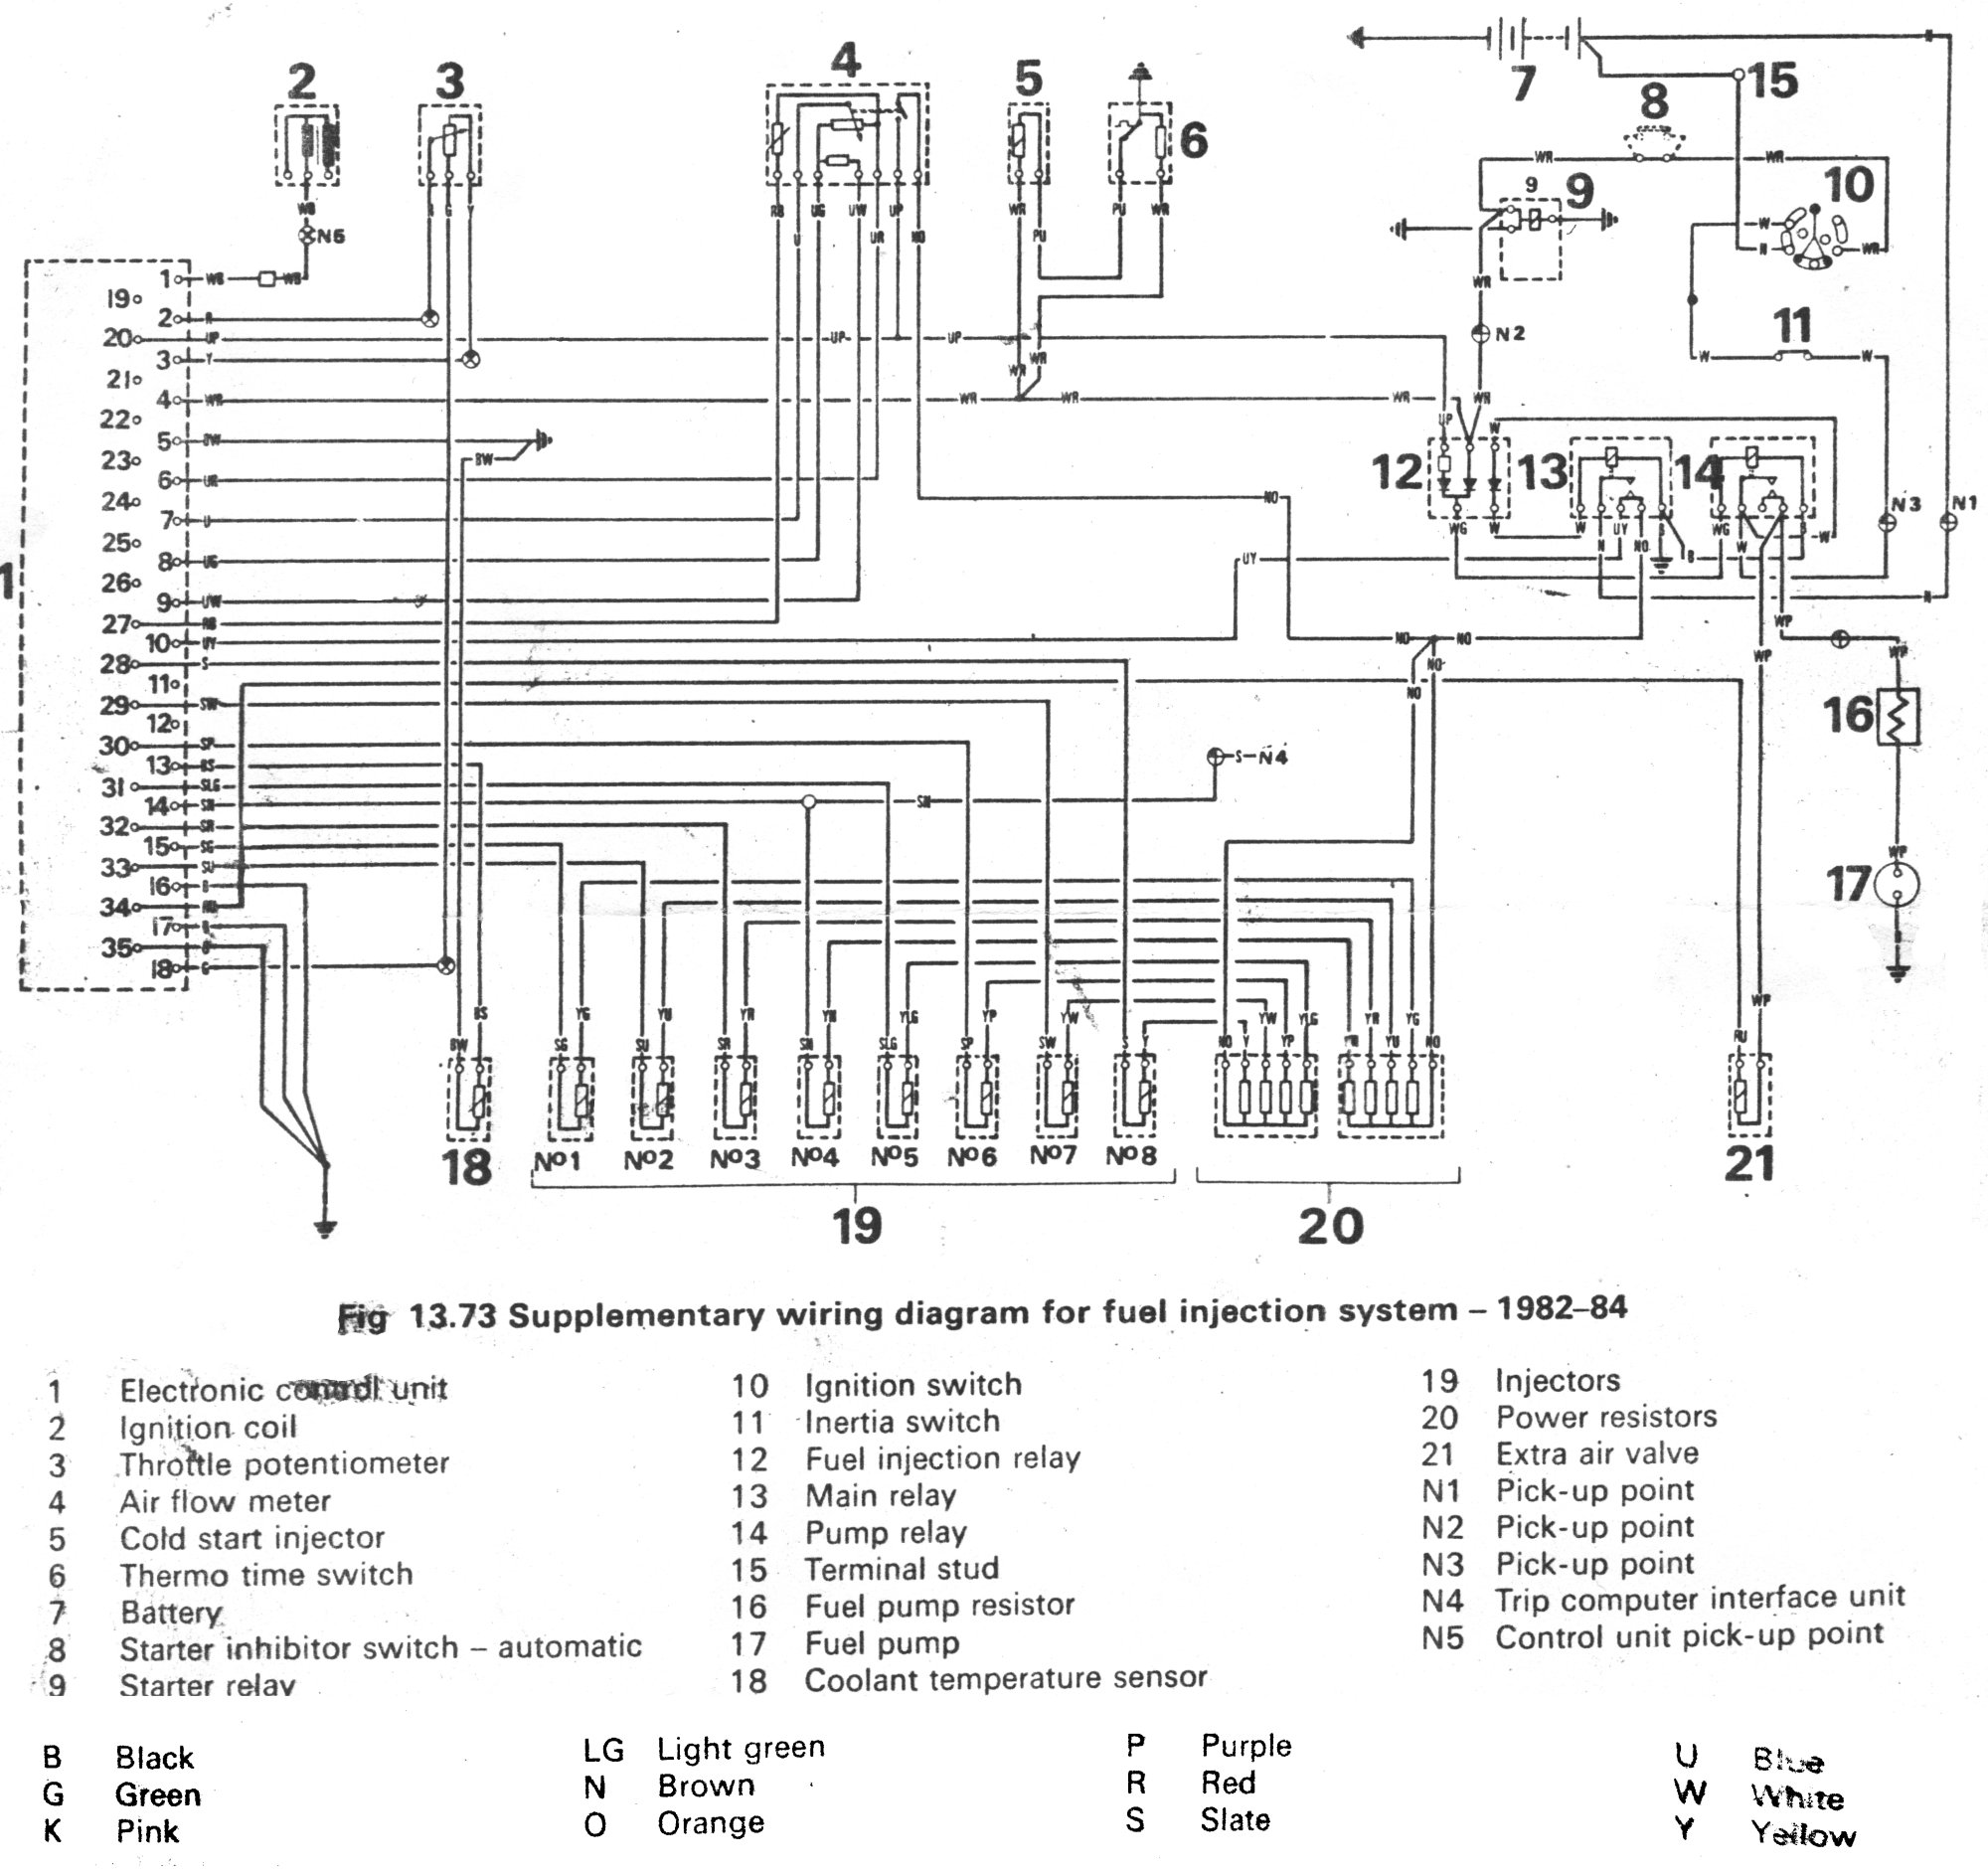 1999 ford ranger xlt fuse box diagram TgqcMDc wiring diagram for car 1998 ford f 150 wiring diagram 1999 ford ranger ignition wiring diagram at edmiracle.co